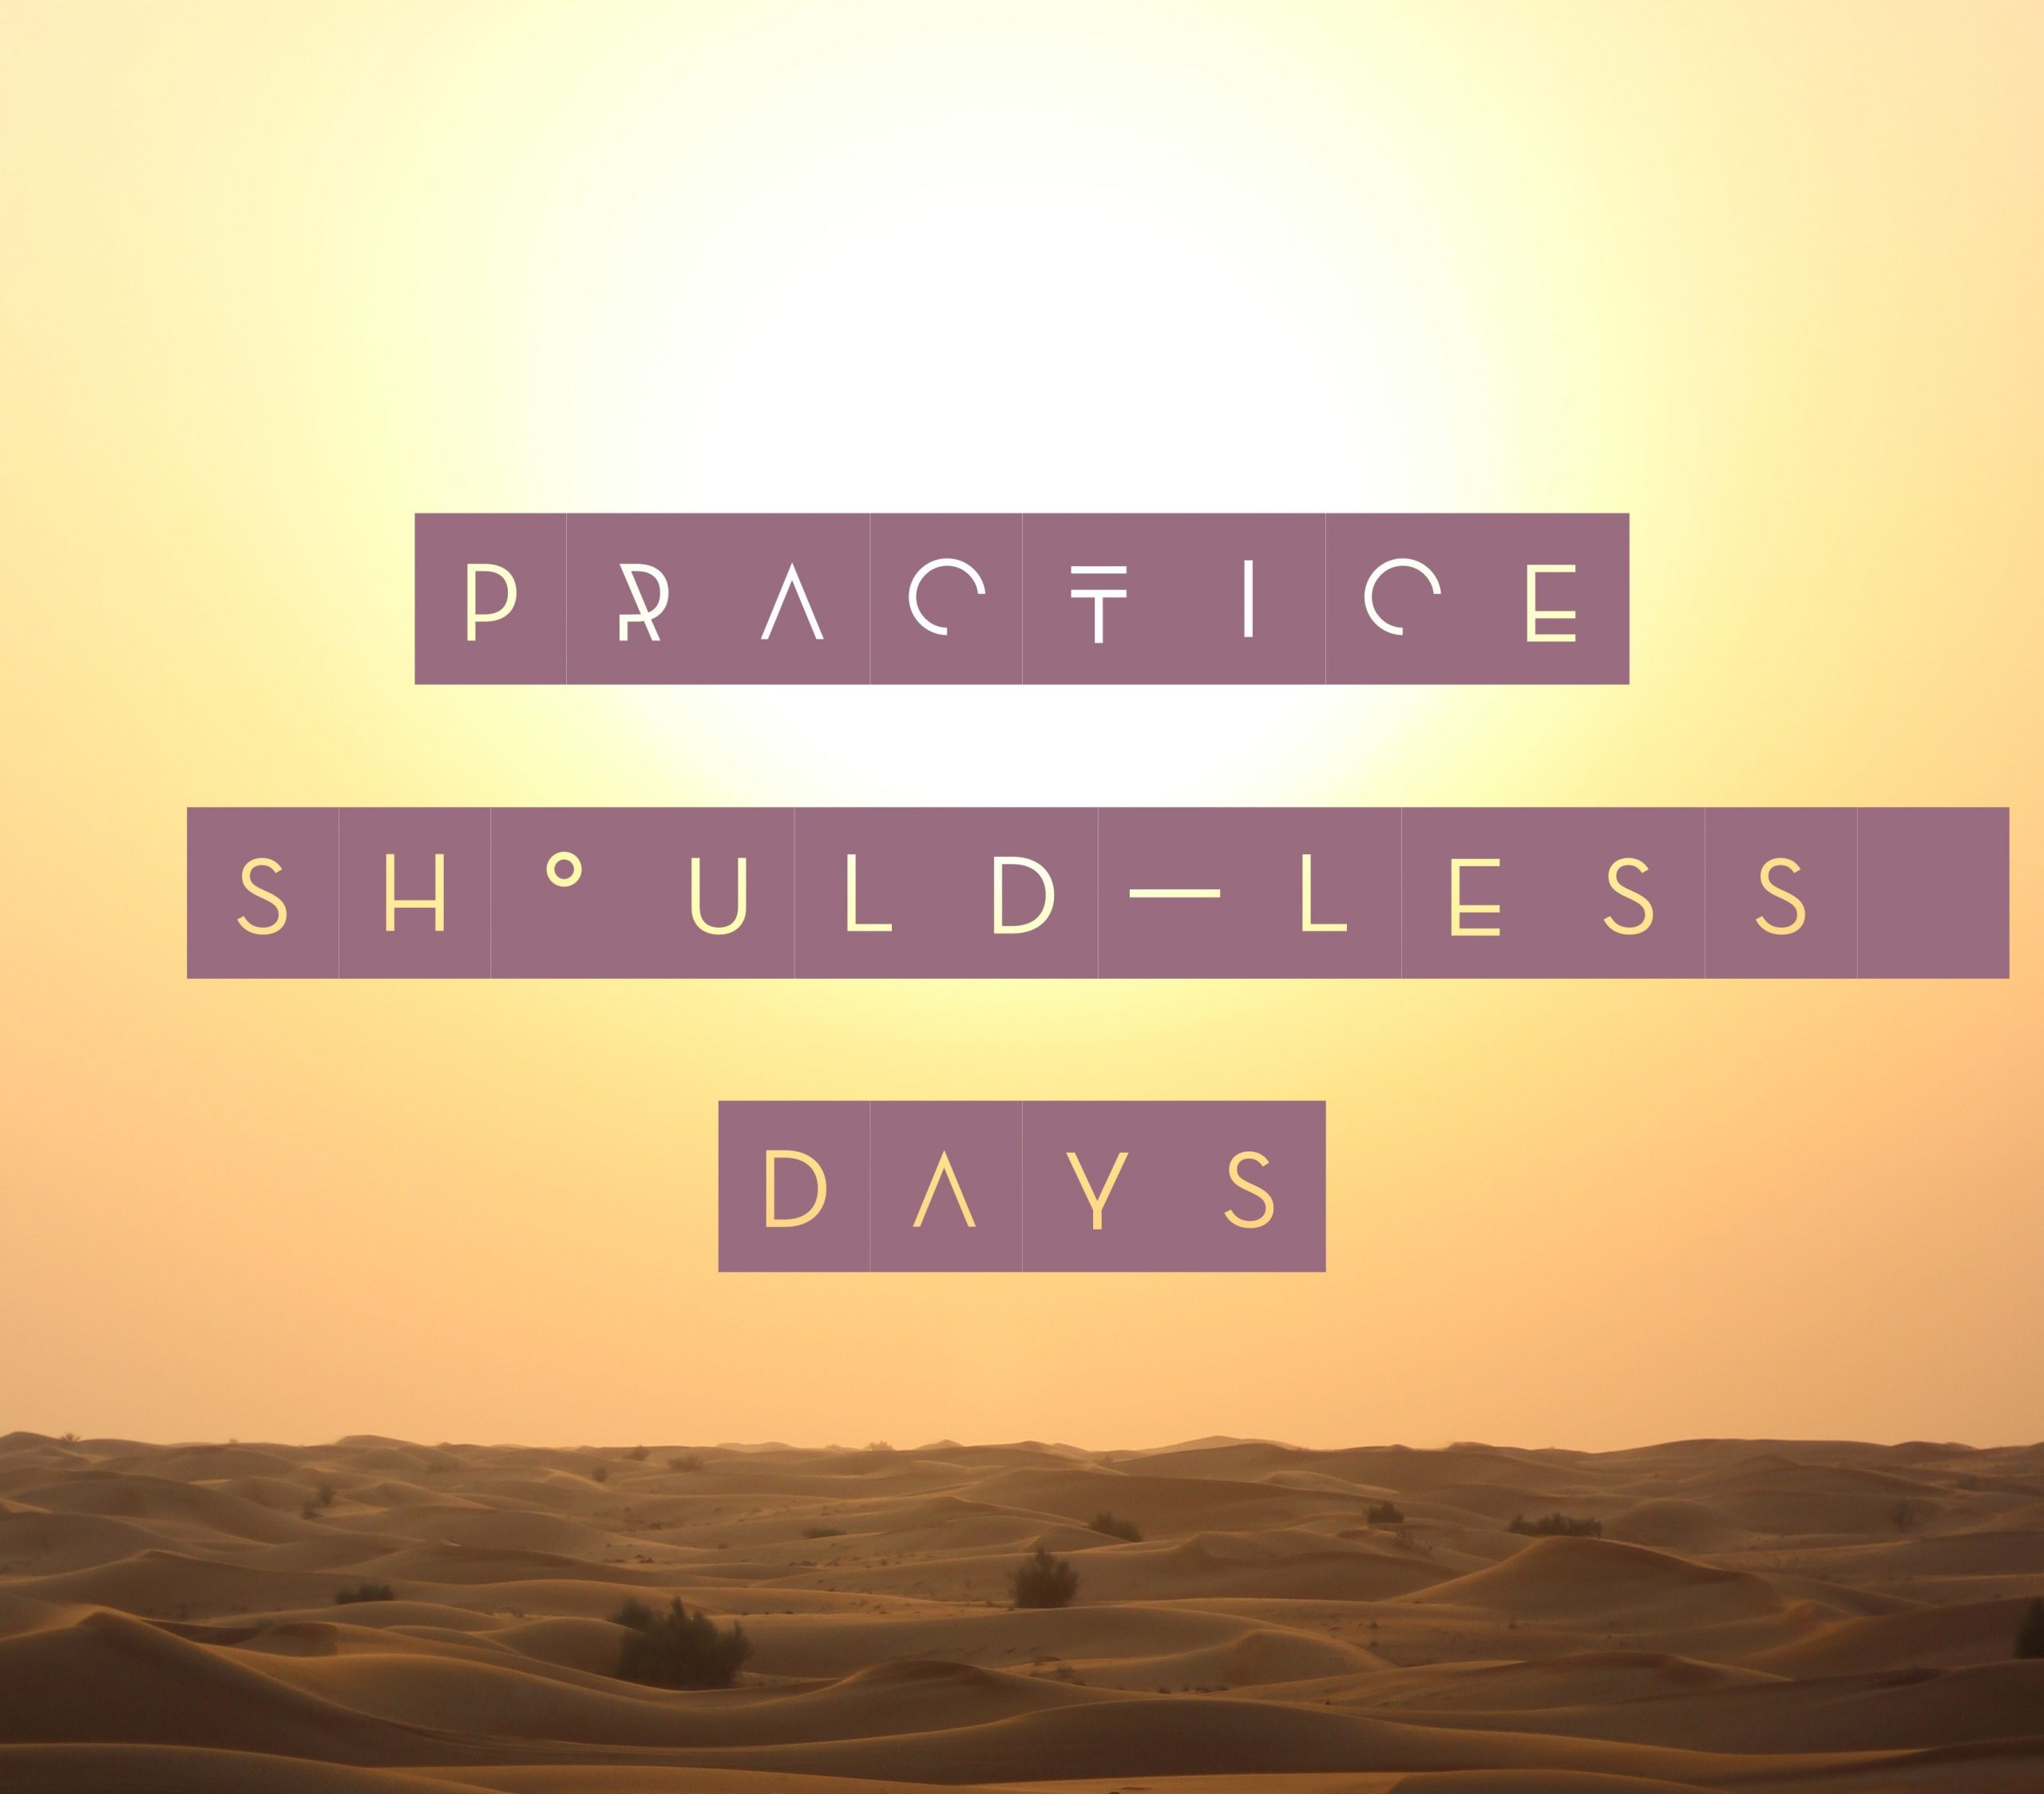 Practice Should-less days